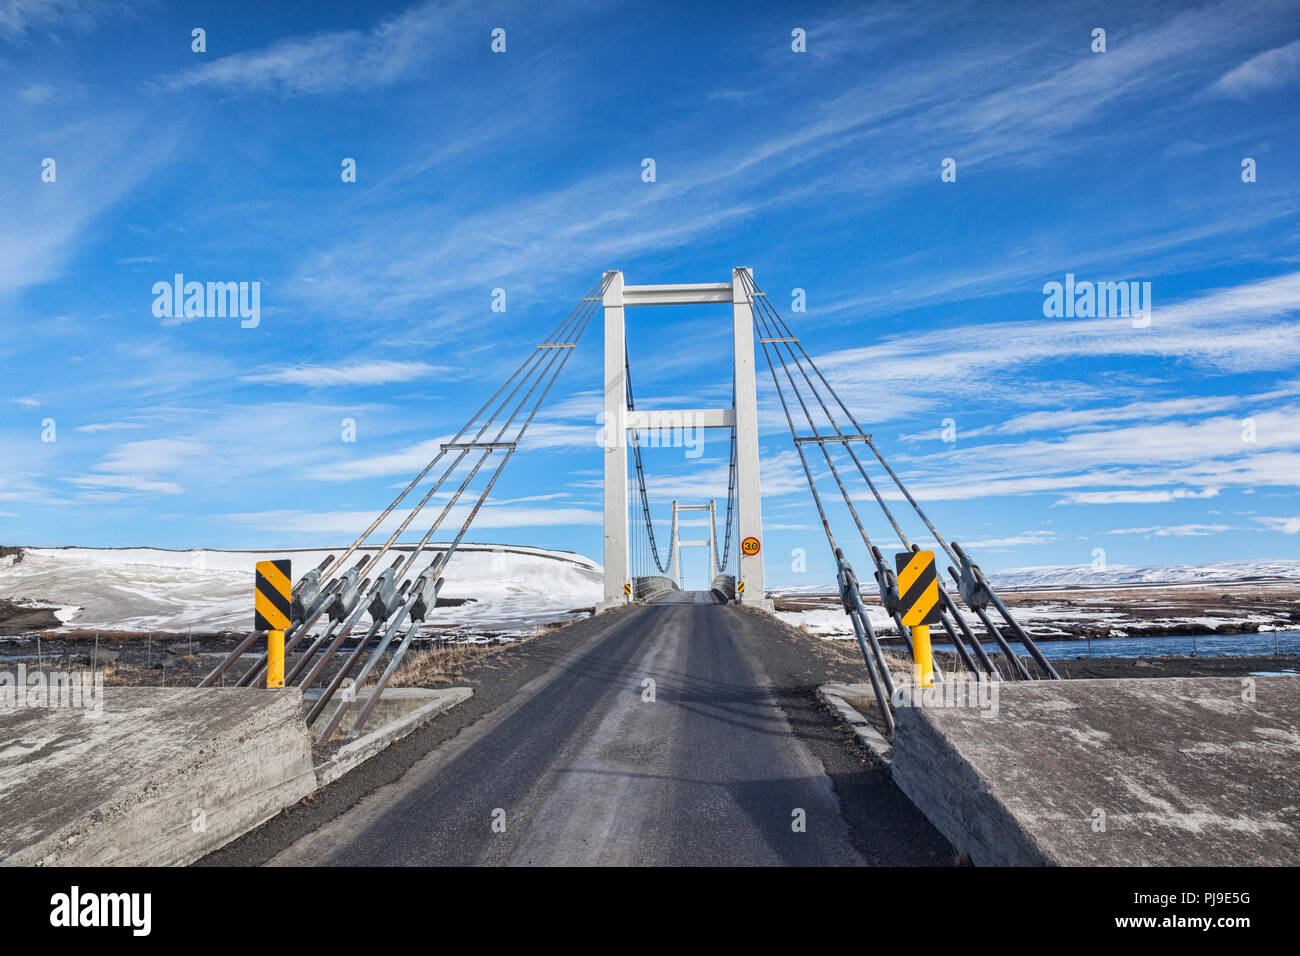 Single Lane Bridge over the River Jokulsa a Fjollum, on the Iceland Ring Road. - Stock Image